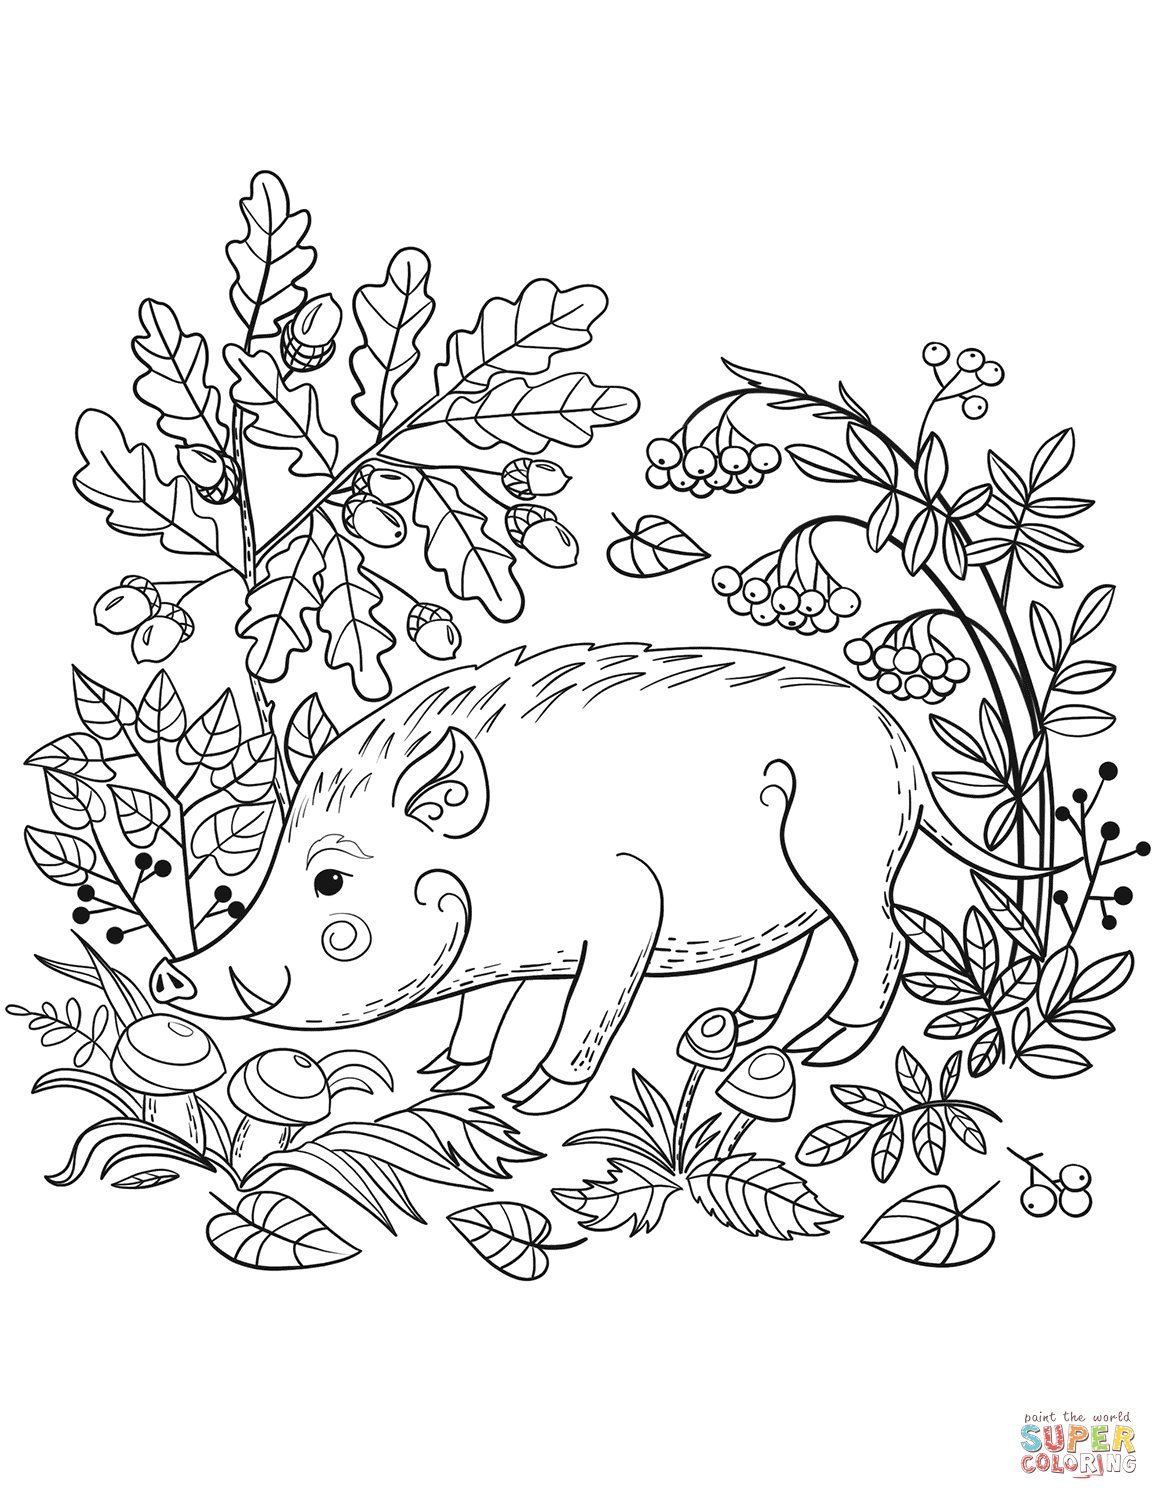 woodland animal coloring pages wild boar in the forest coloring page free printable woodland animal pages coloring